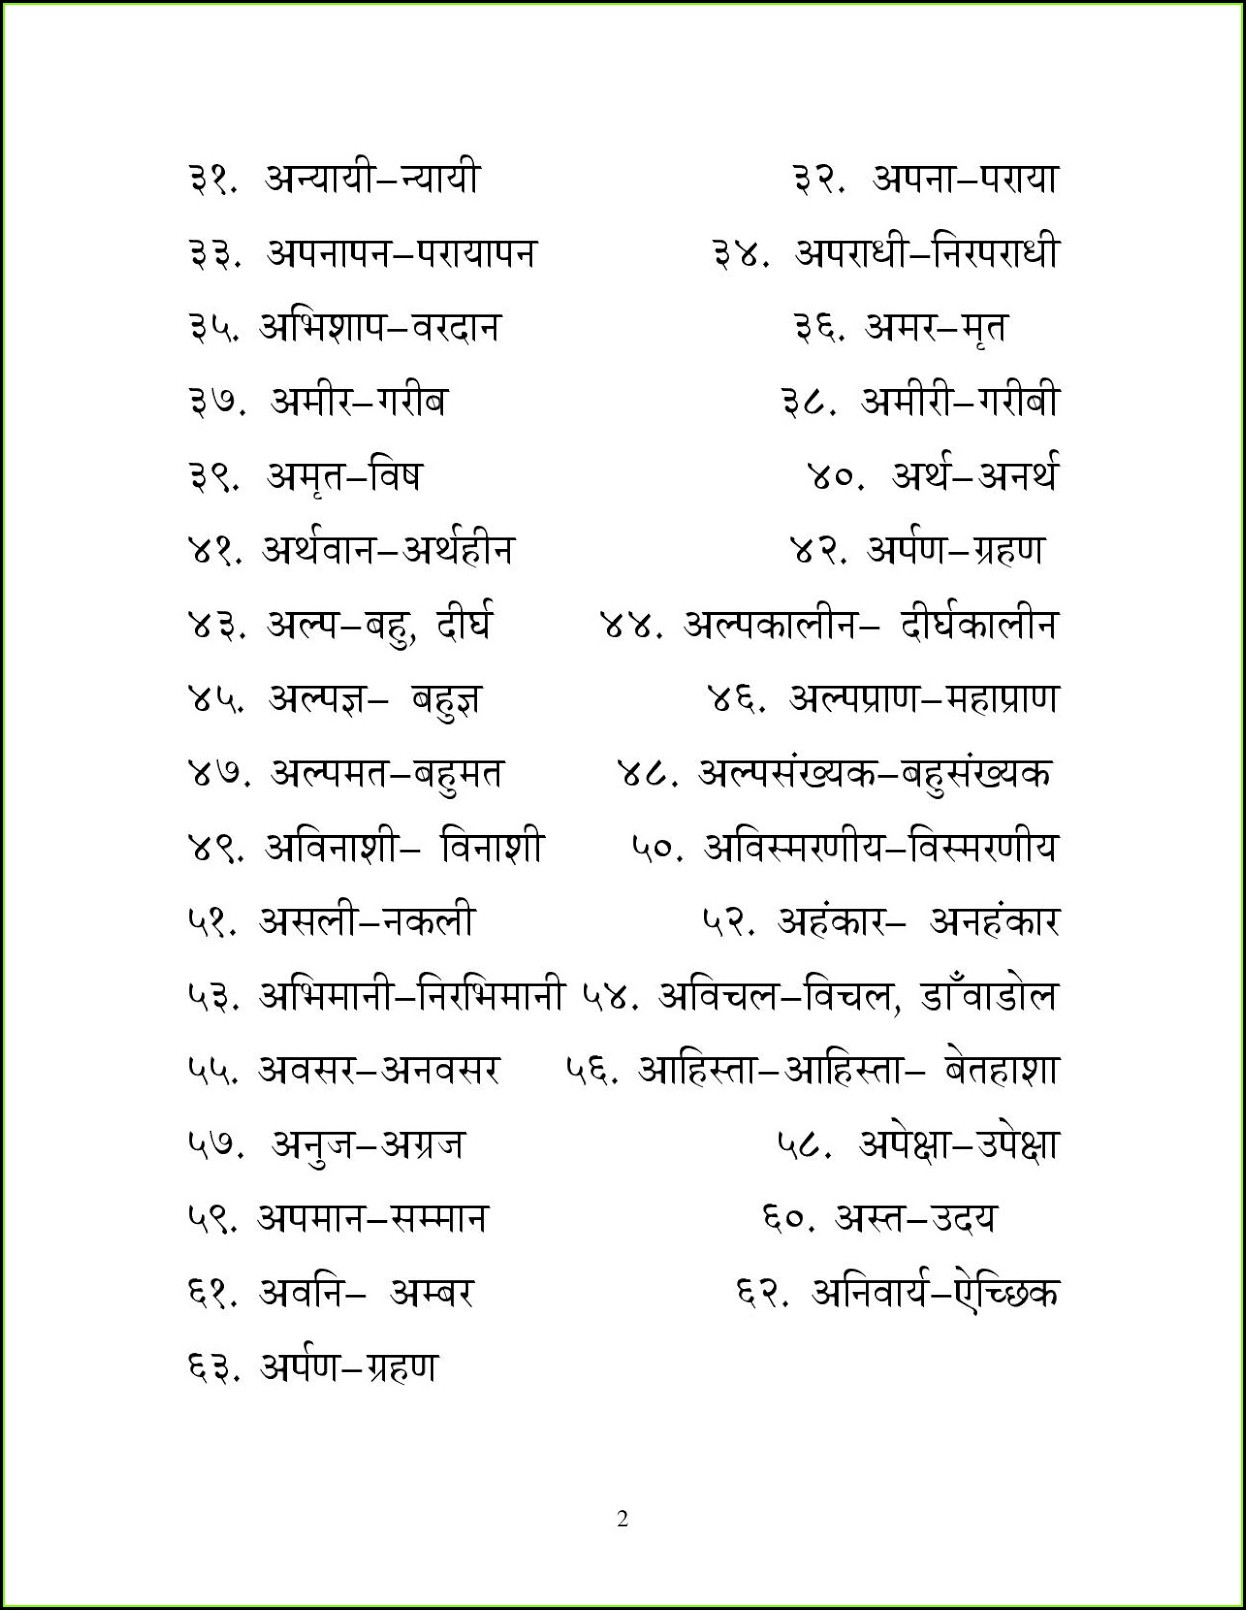 Hindi Worksheet Kriya Printable Worksheets And Activities For Teachers Parents Tutors And Homeschool Families